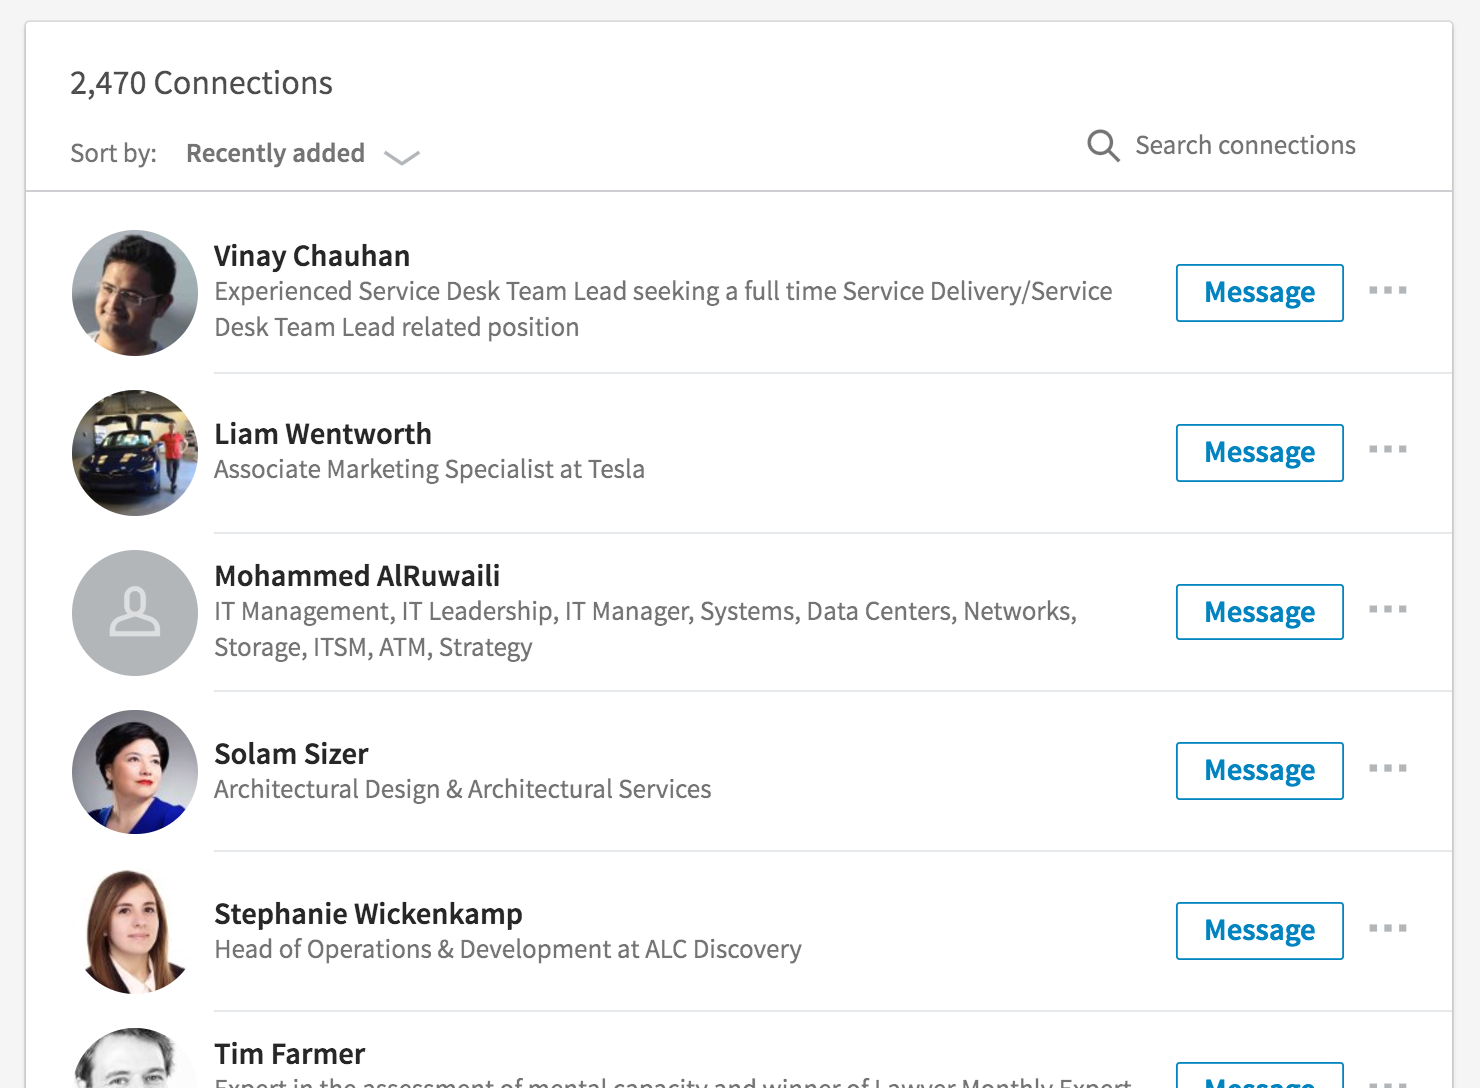 How to delete a connection on LinkedIn